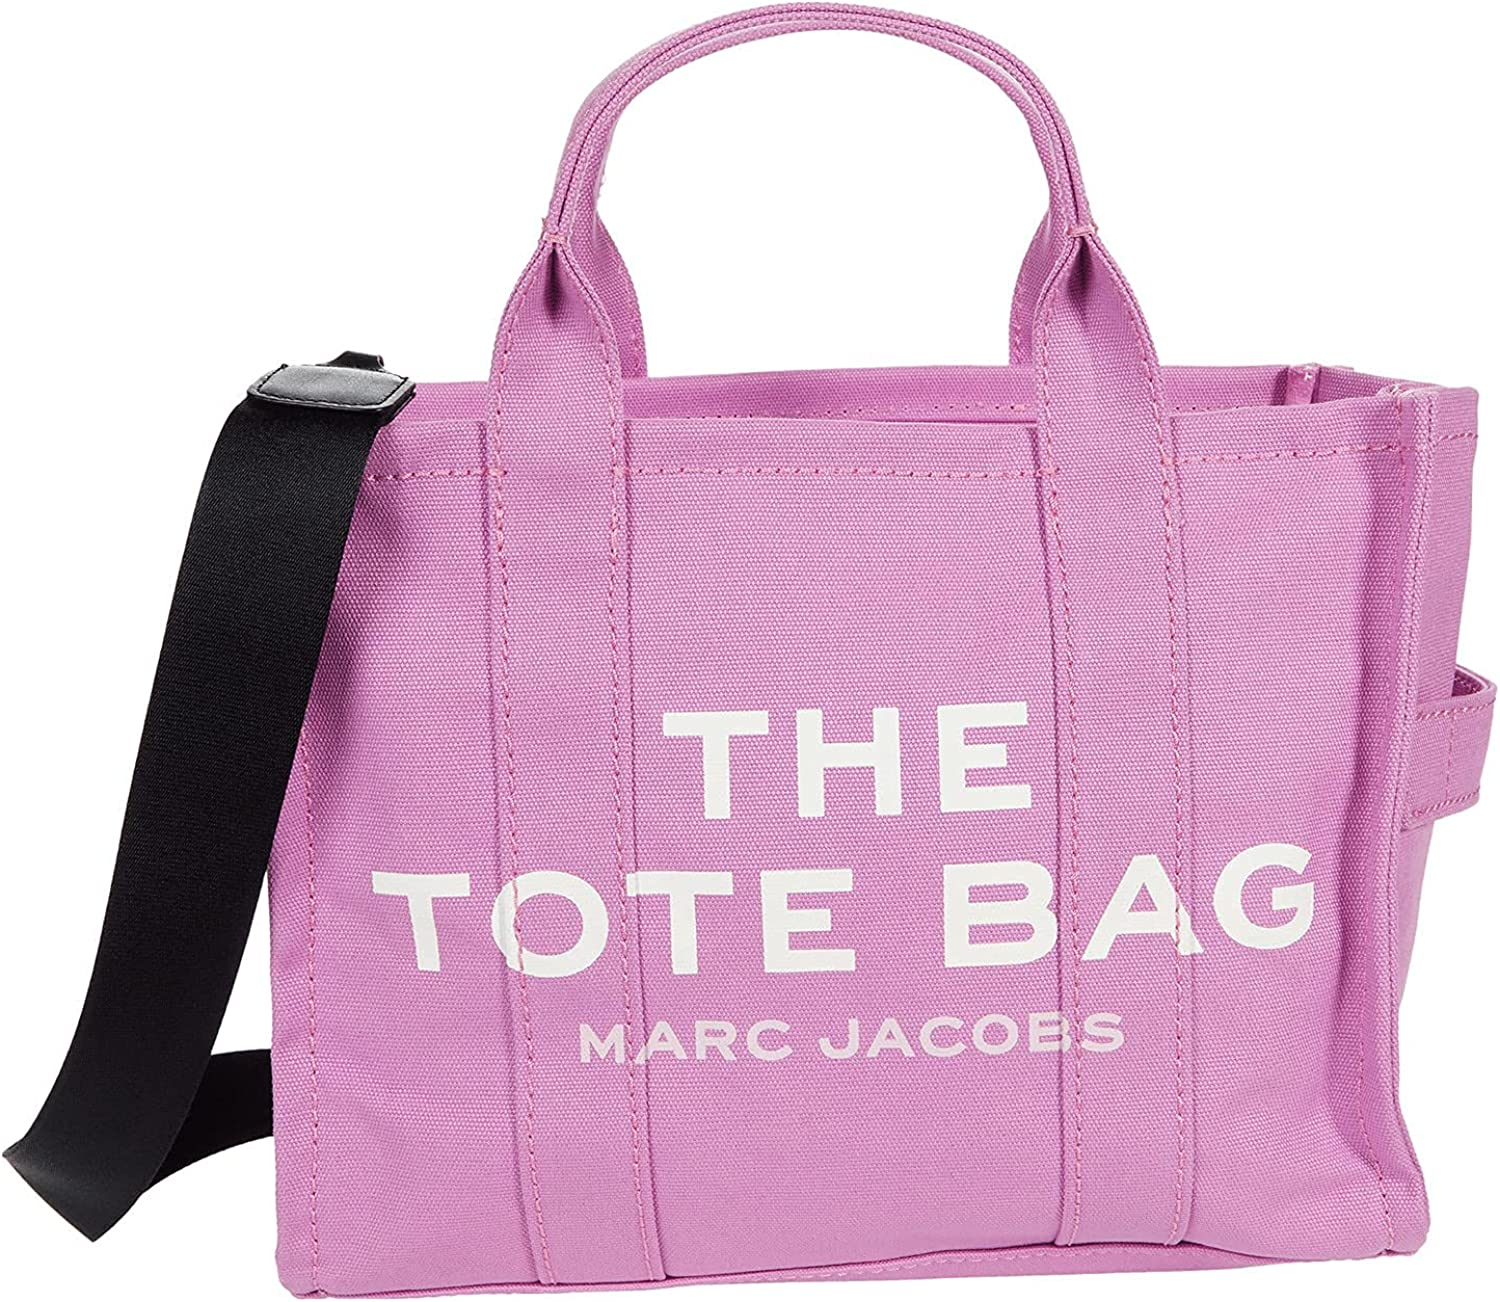 The Marc Jacobs Women's Small Traveler Tote